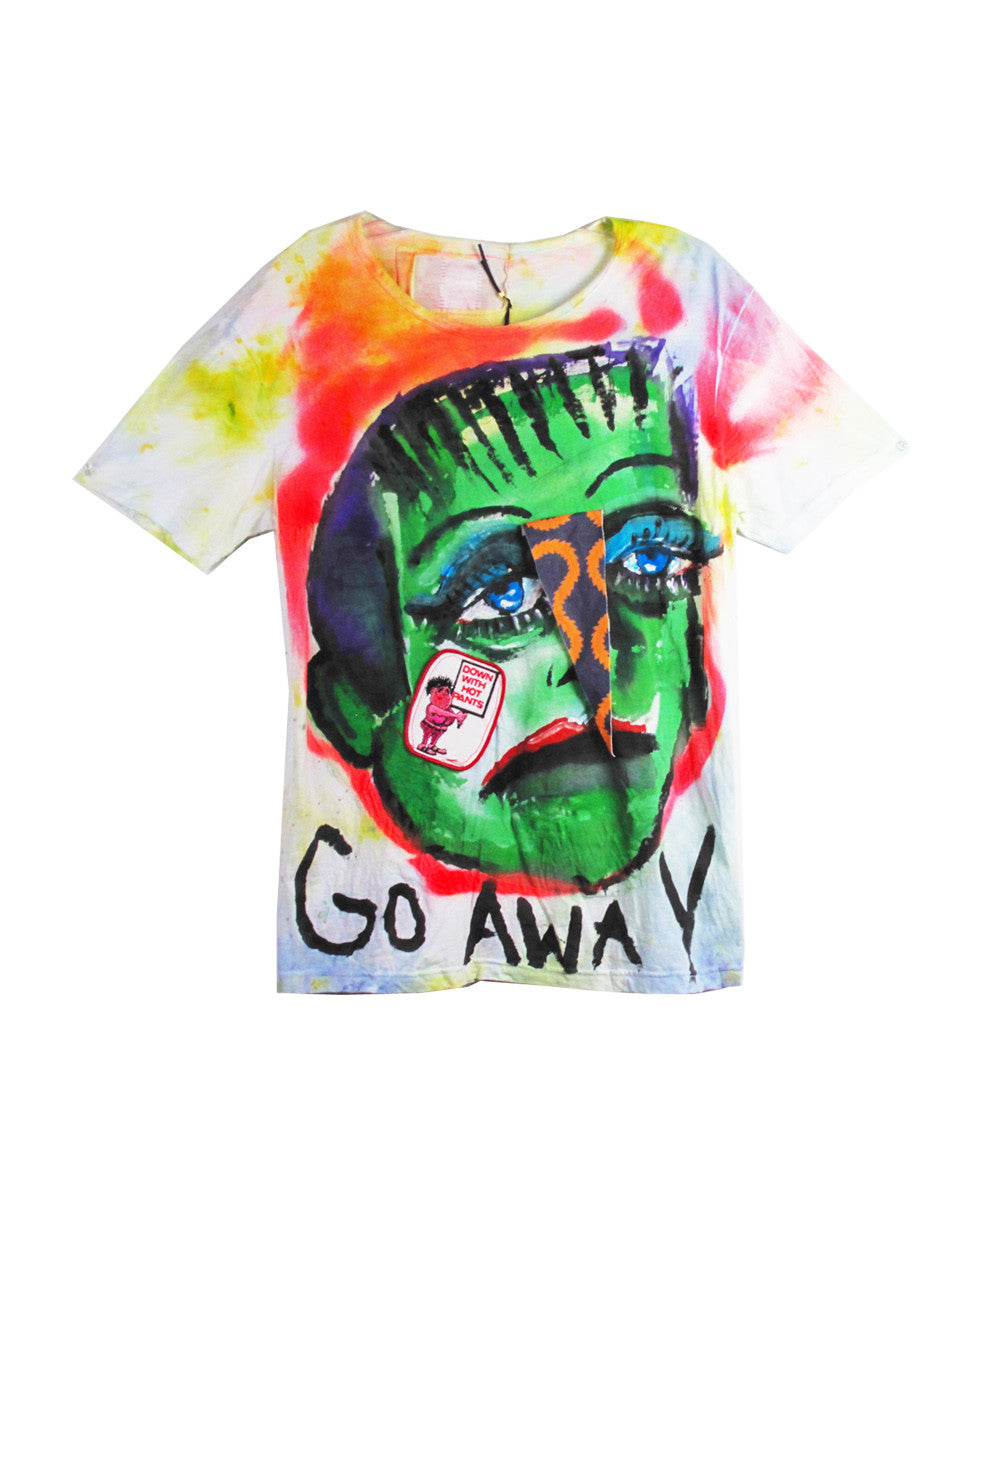 Scooter LaForge 'GO AWAY' Tee - AVAILABLE FOR IMMEDIATE DELIVERY SIZE M